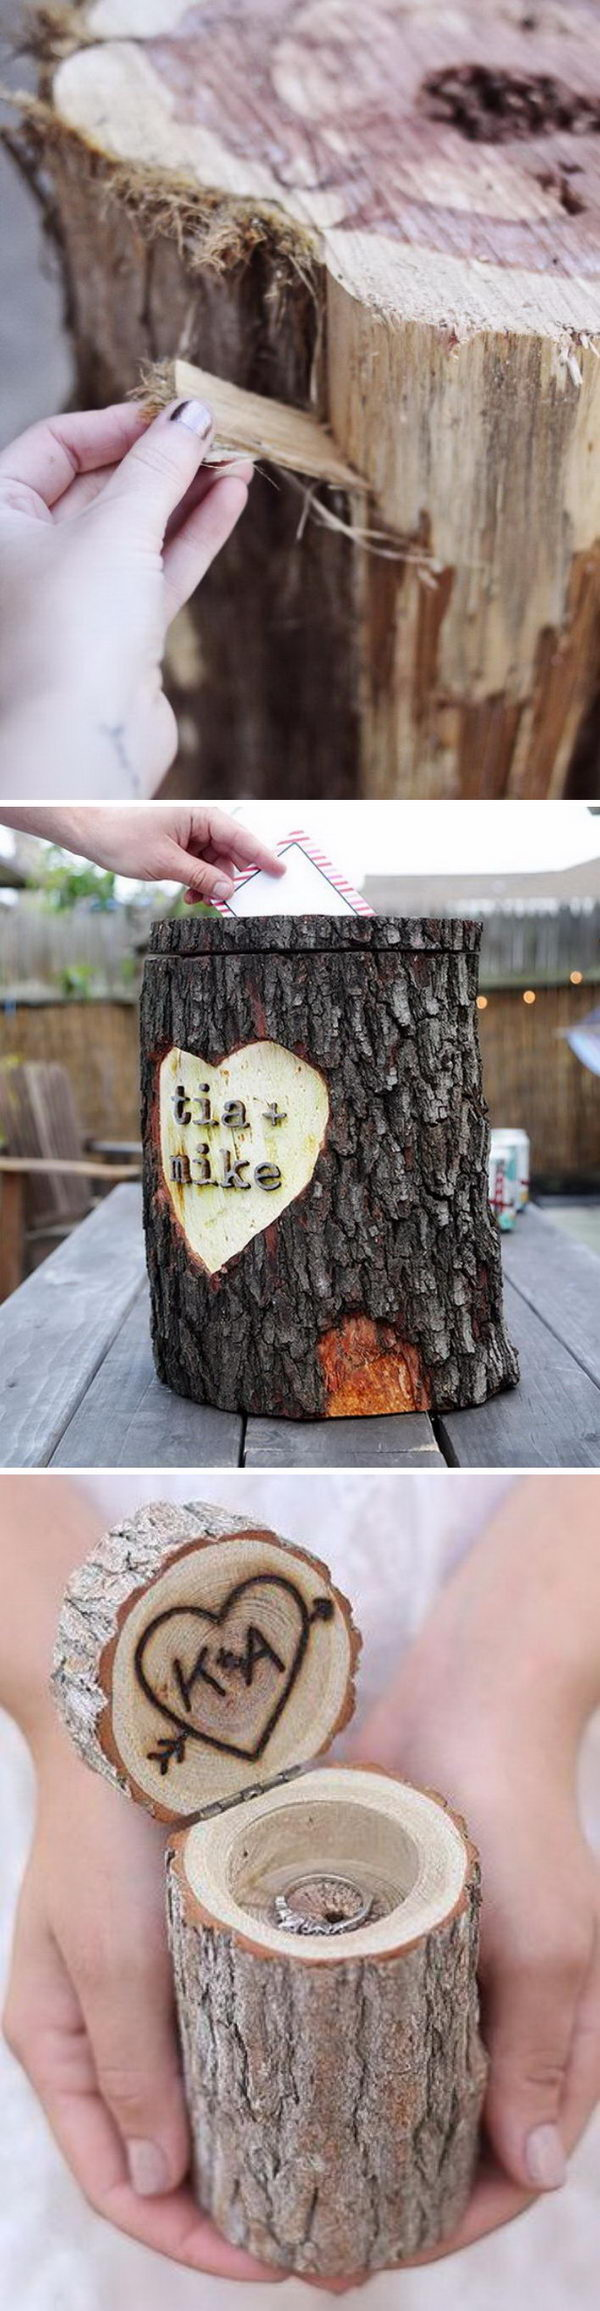 Budget Friendly Rustic Real Wedding Ideas.